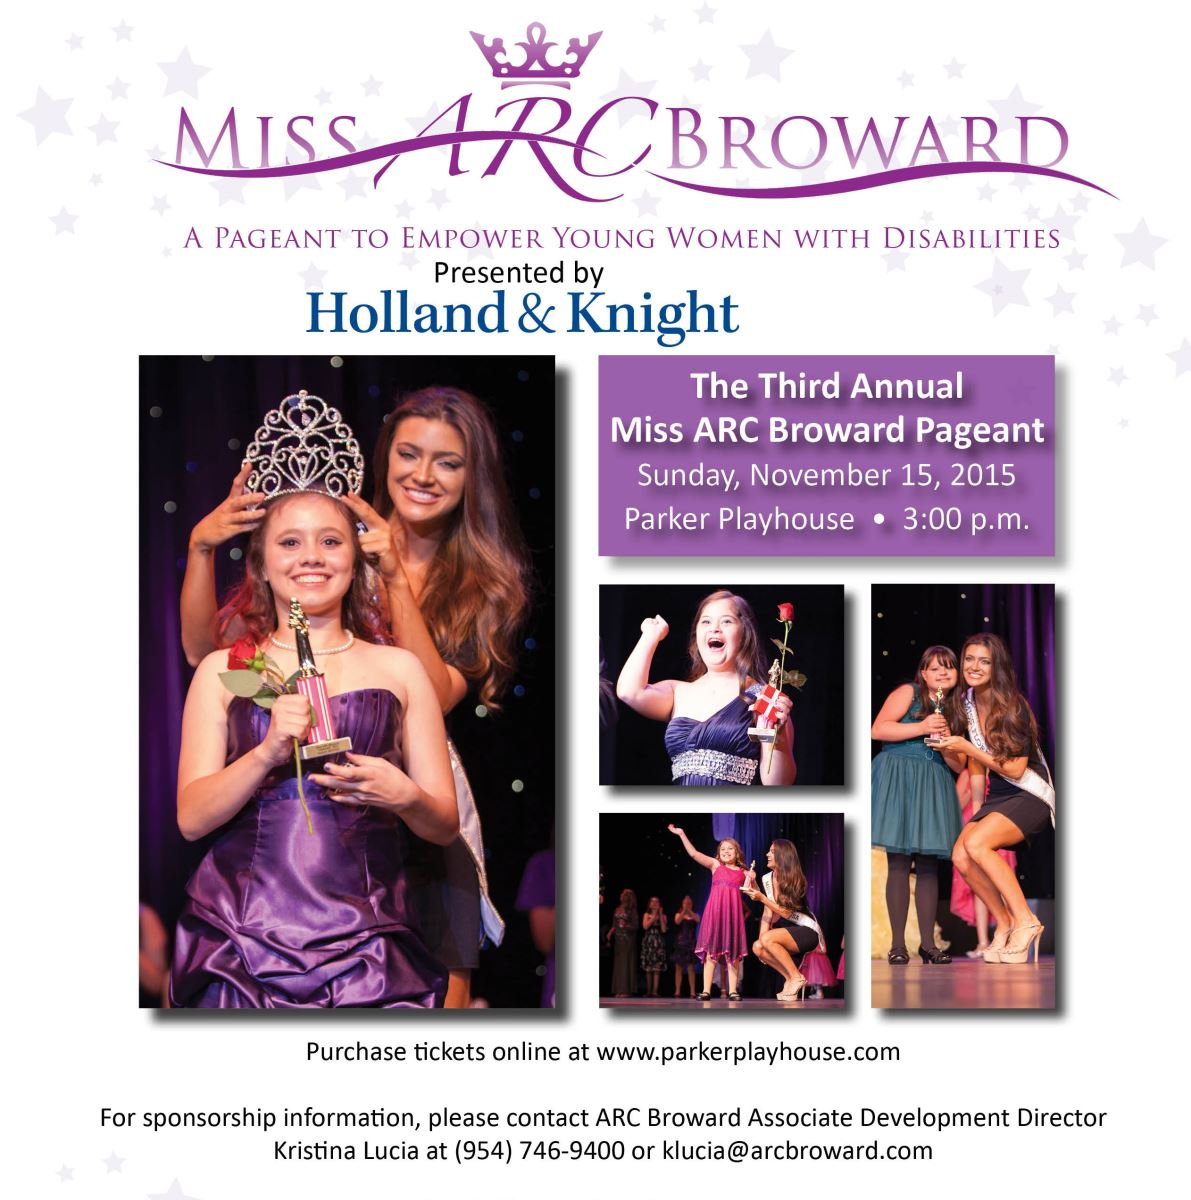 Miss ARC Broward Pageant, a pageant to empower women with disabilities,  will take place November 15 at Parker Playhouse in Fort Lauderdale.